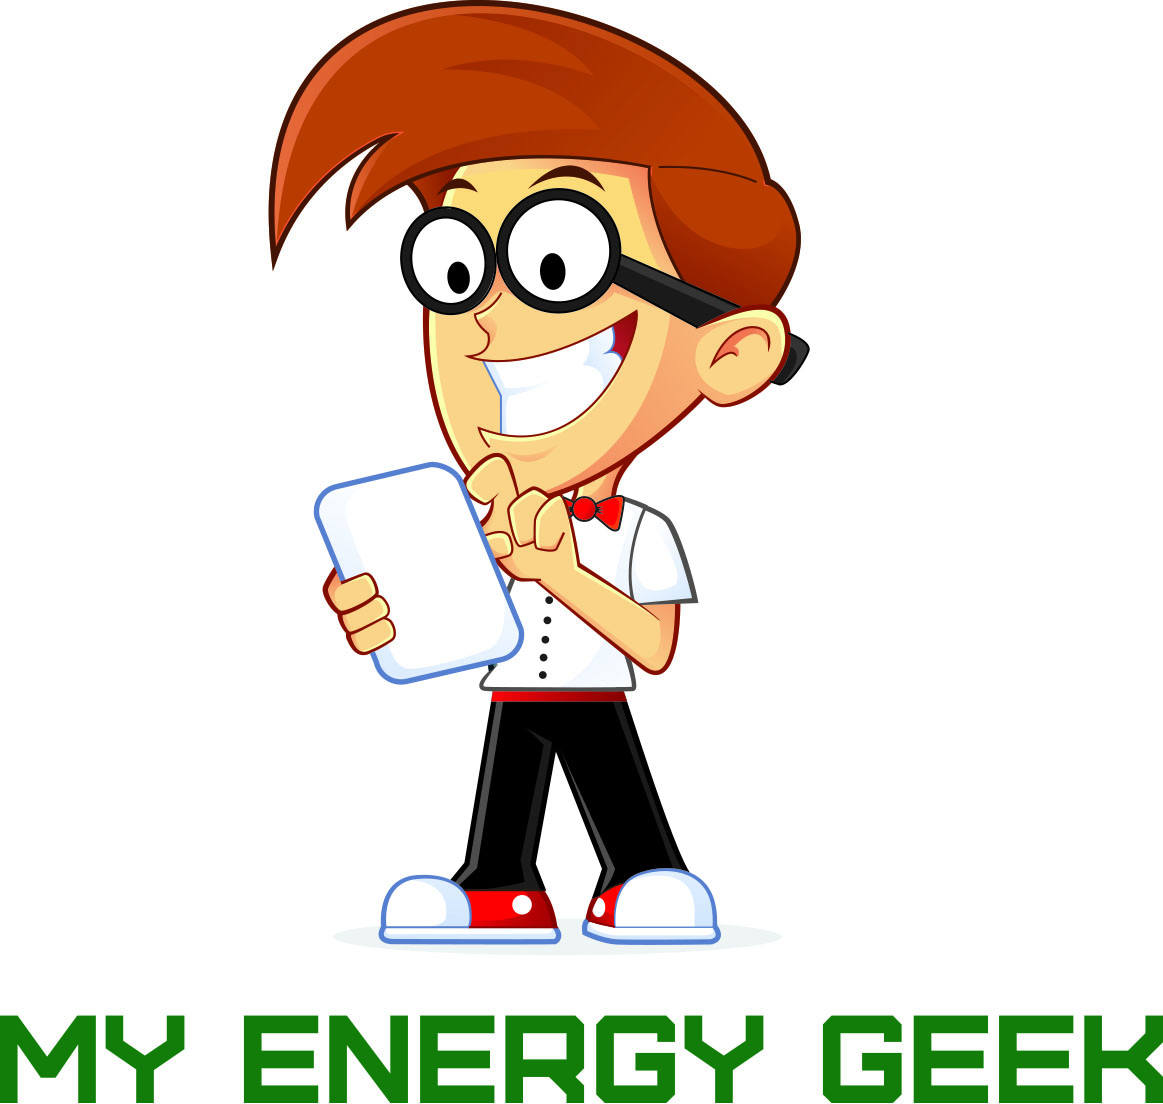 MyEnergyGeek_HiRez_ForPrint